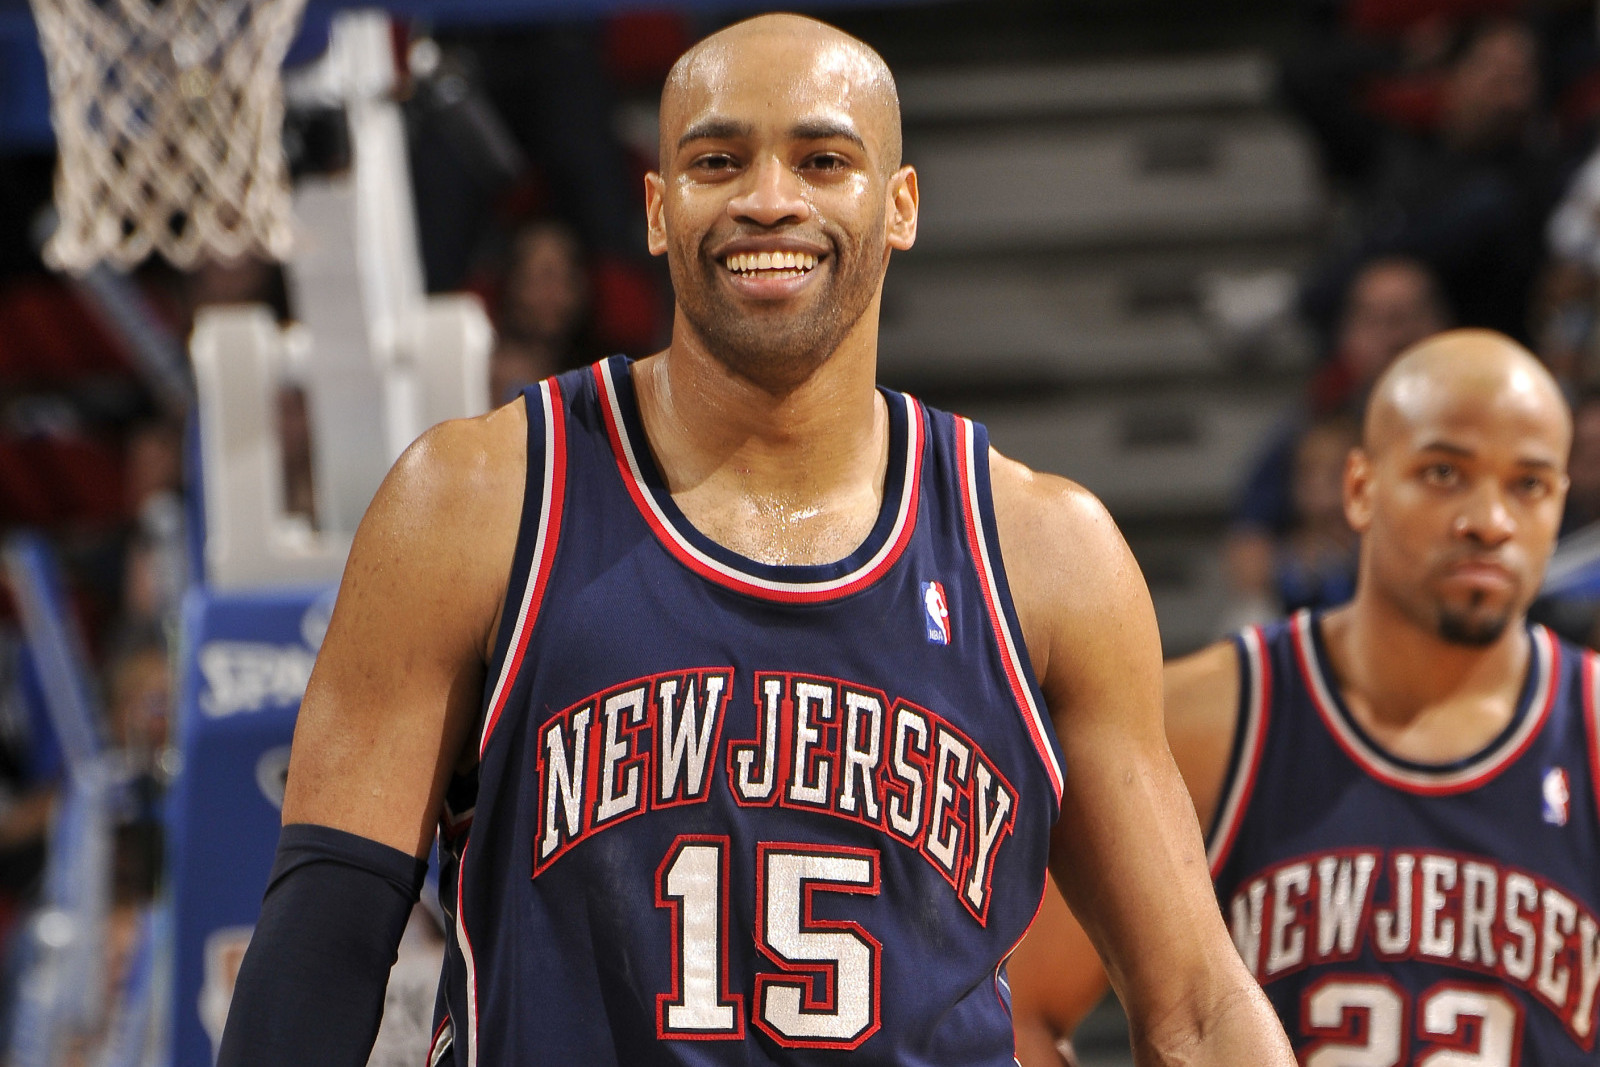 size 40 e21ac 339df Brooklyn Nets should bring back Vince Carter for 1 last run